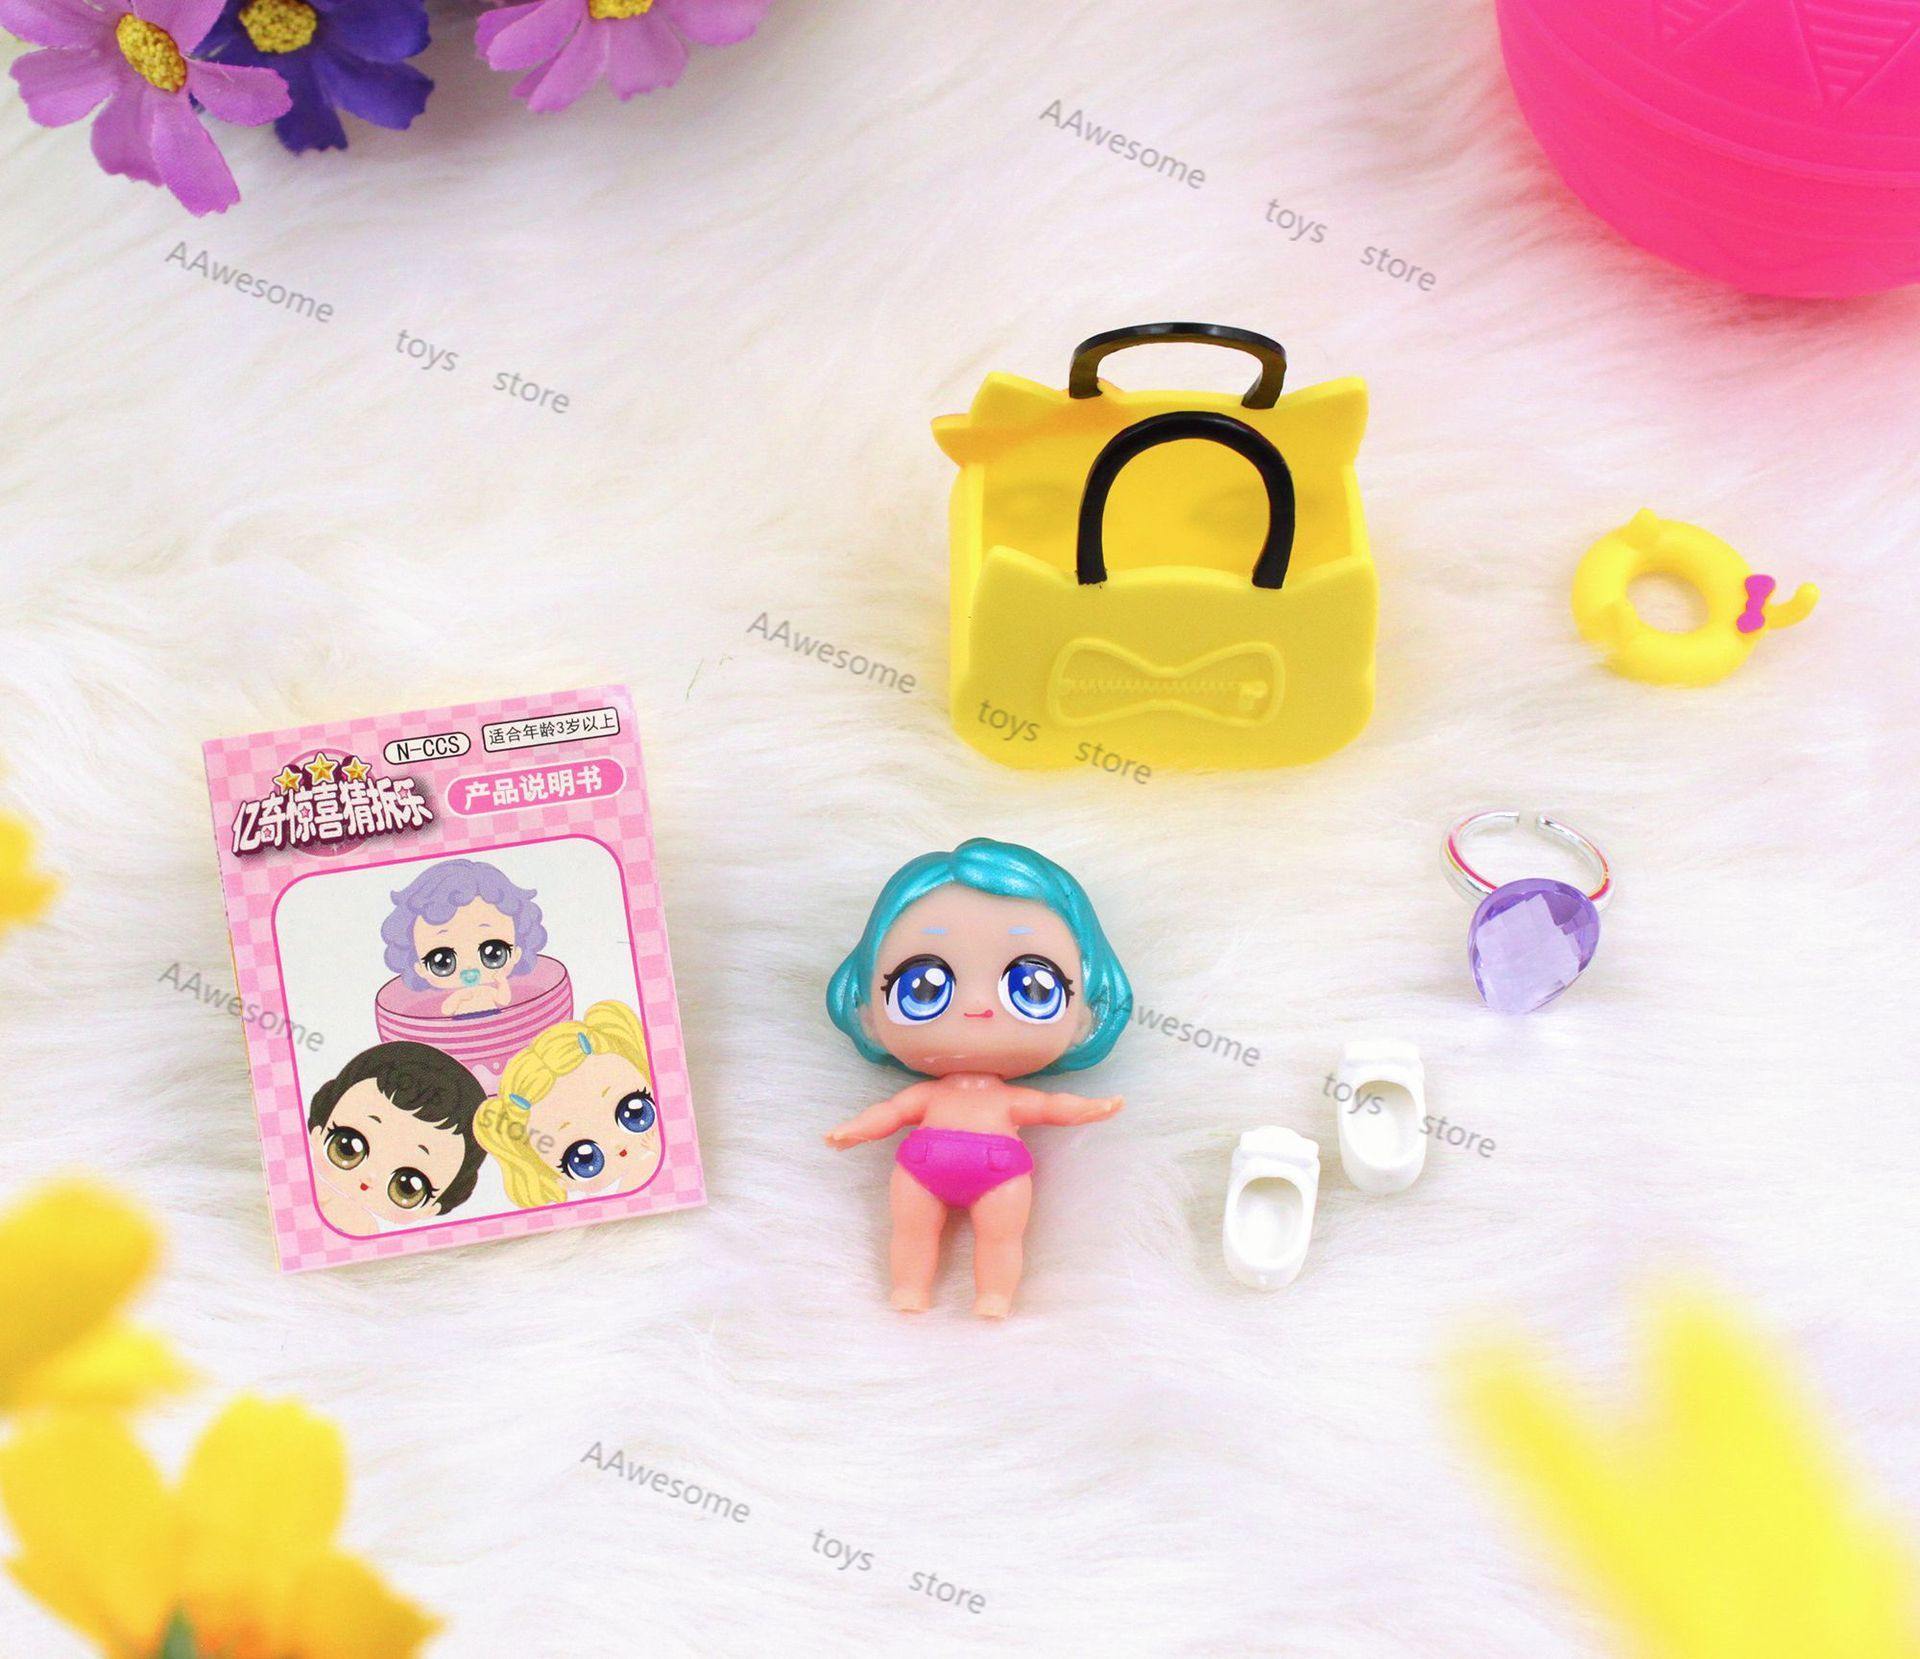 EAKI Lol Surprise Guess The Demolition Music Surprise Doll Doll Girl DIY Dress Up Play House Care Educational Toys for Girl